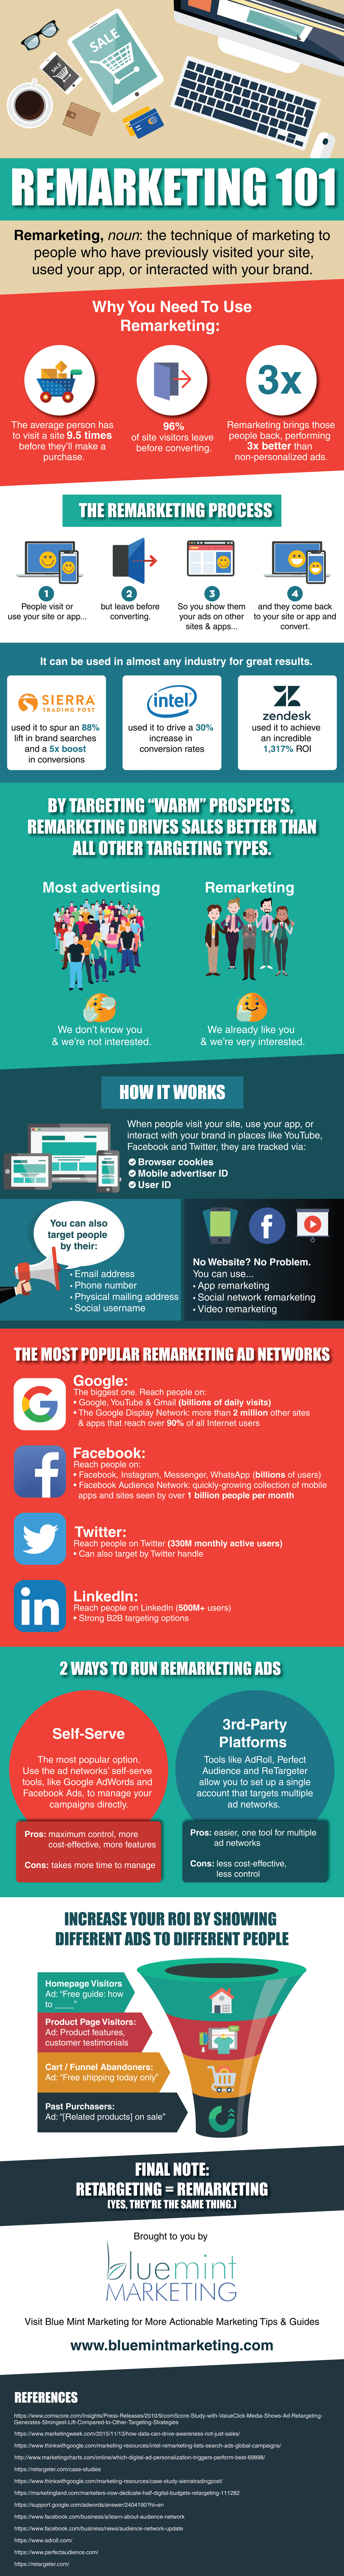 Remarketing 101 Infographic - How Remarketing Works.png